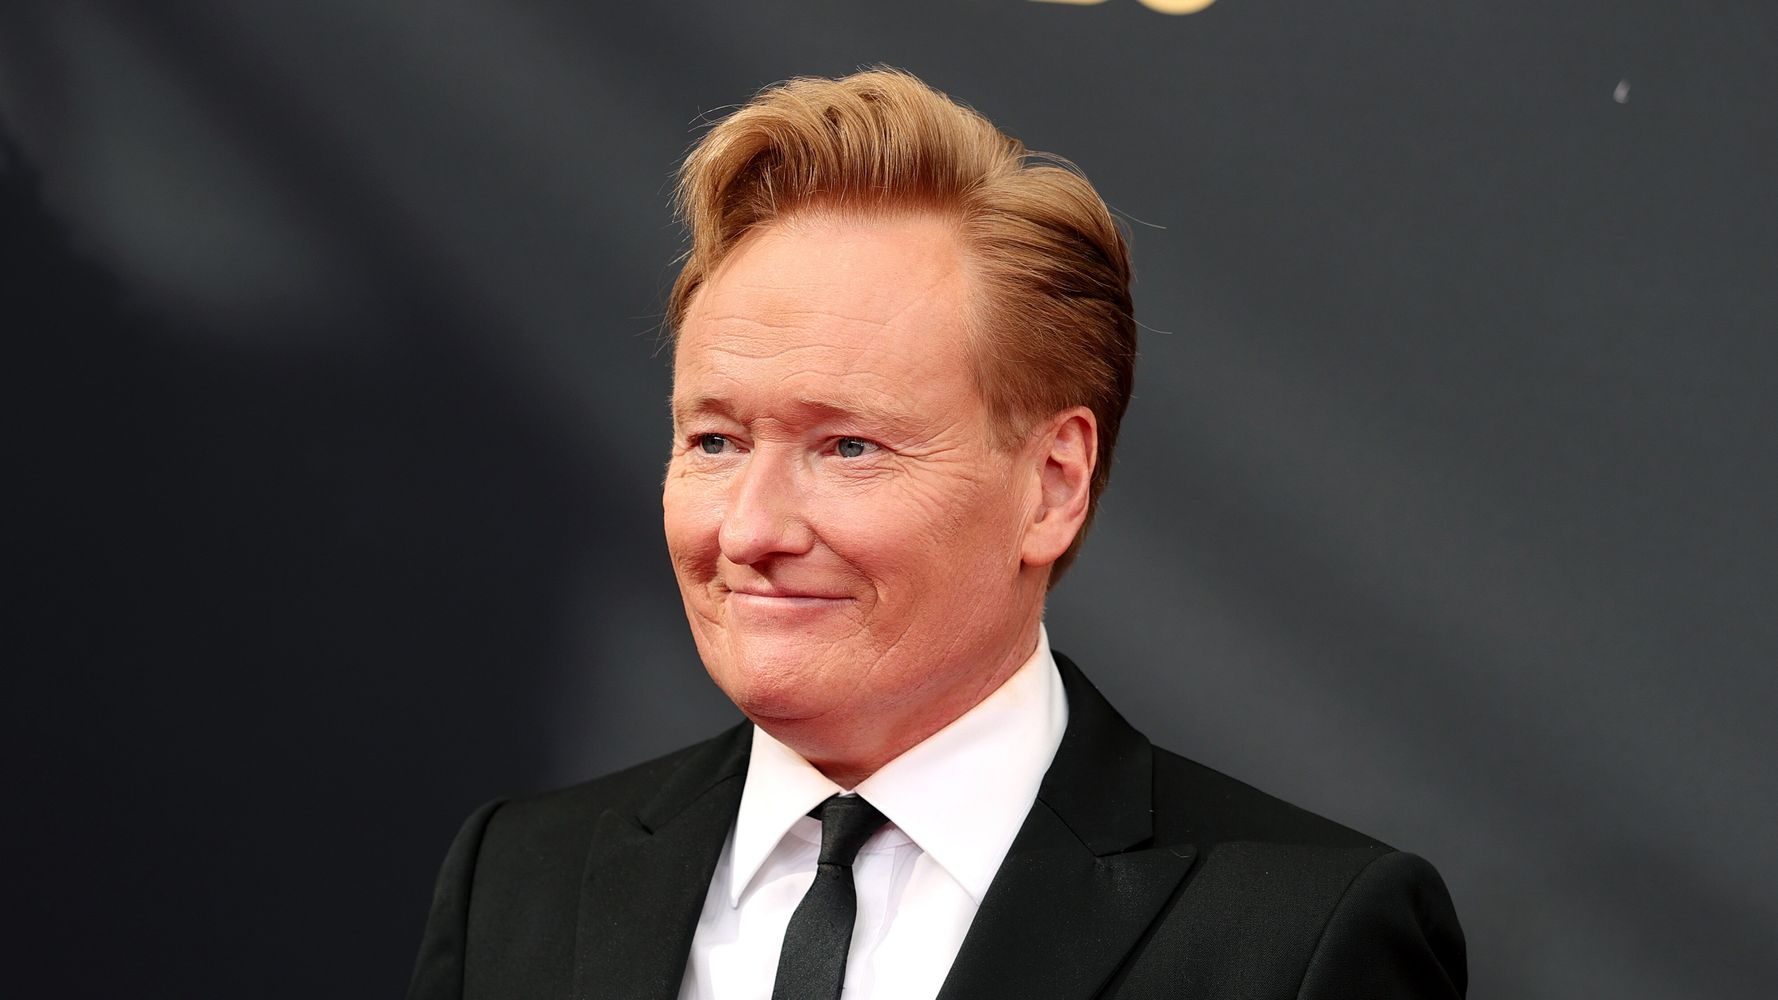 Conan O'Brien Interrupts Emmys With Hilarious Outburst, Sends Twitter Into Tailspin - Yahoo Entertainment